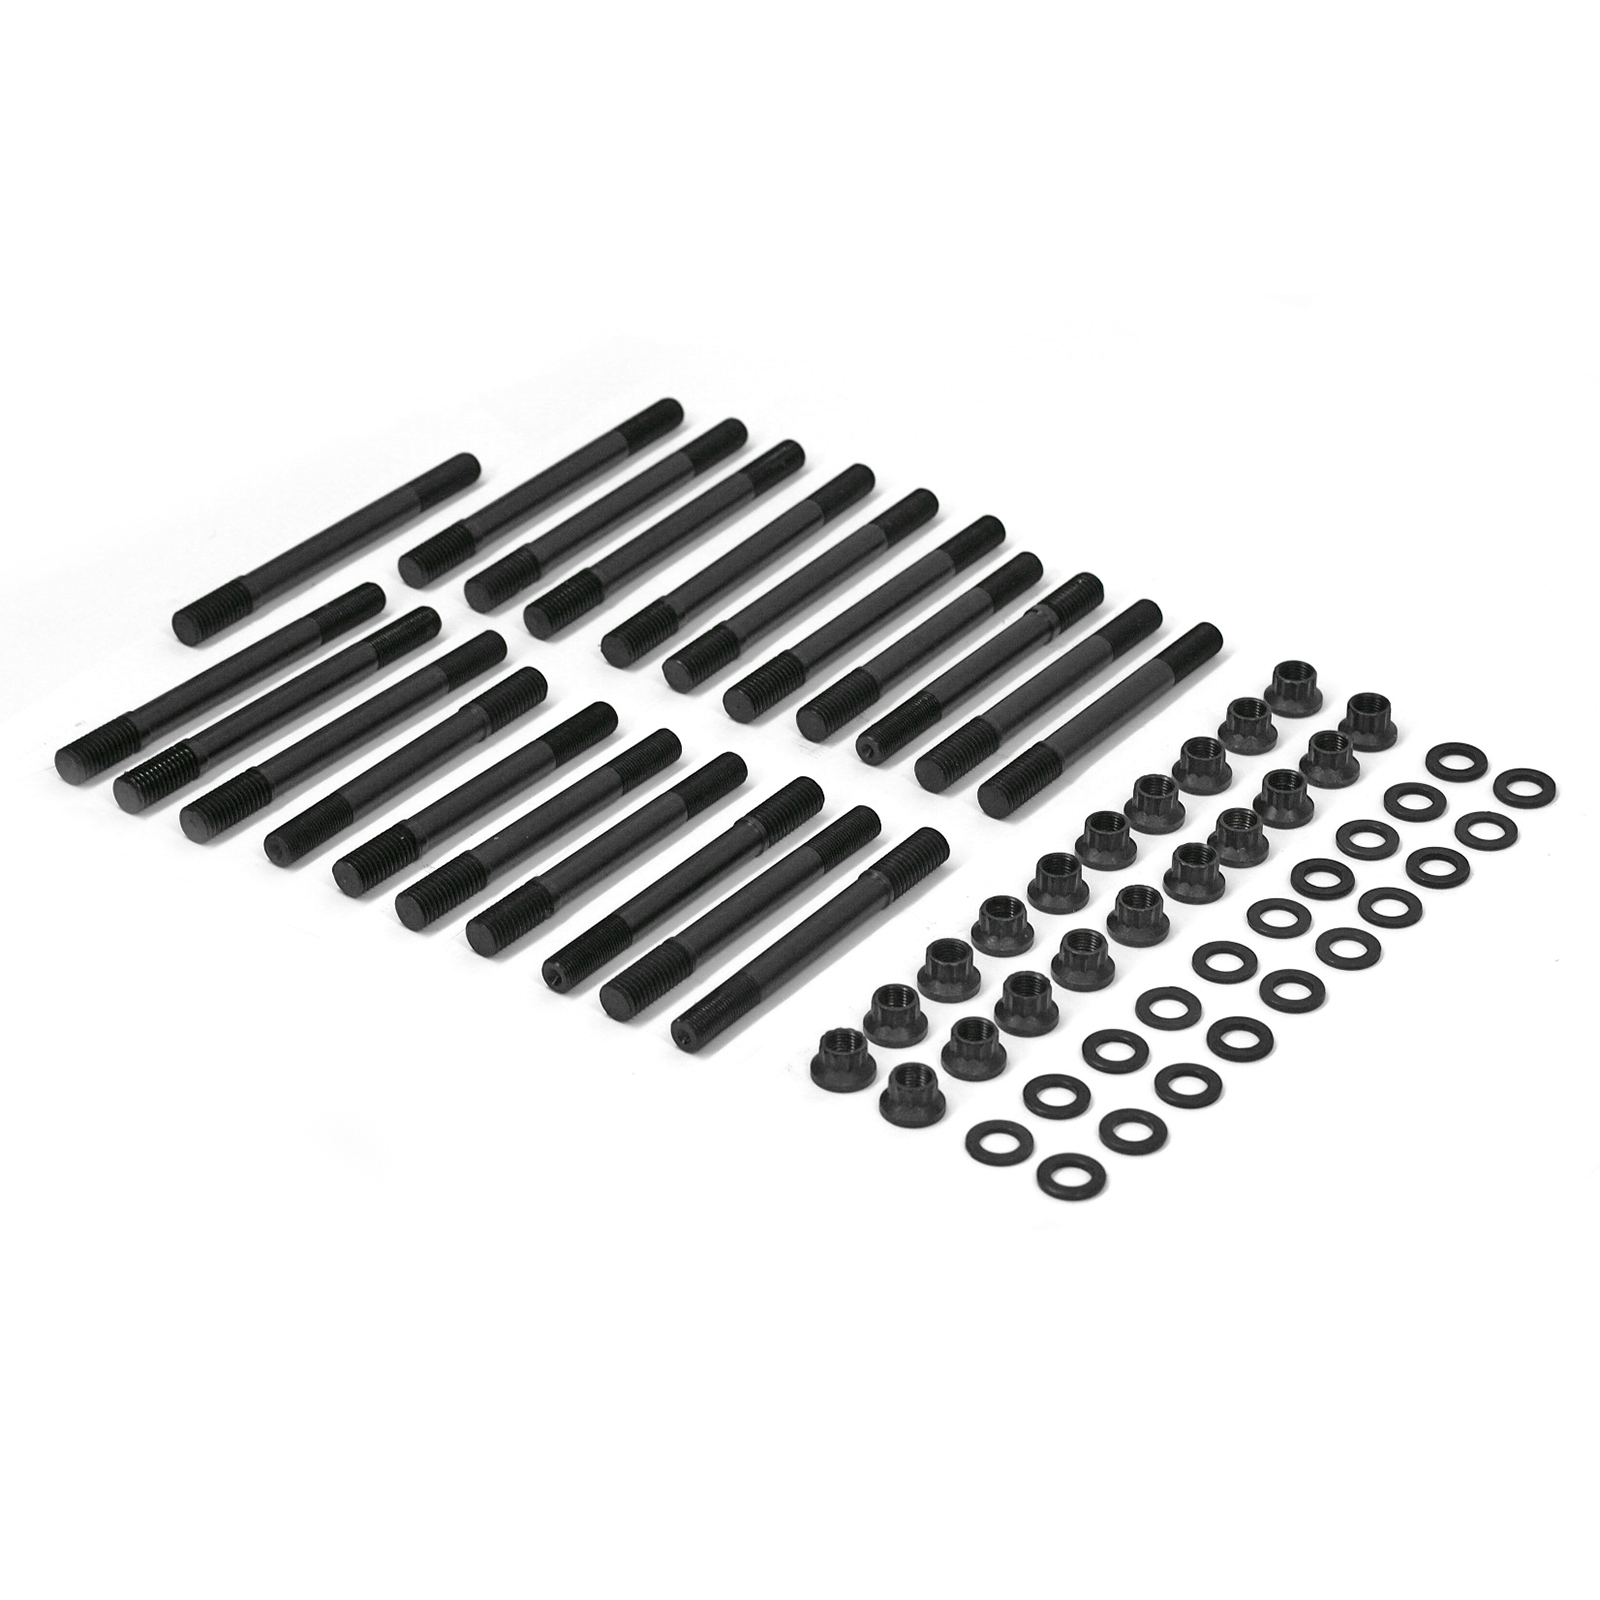 Chrysler 260 12 Point Head Stud Kit